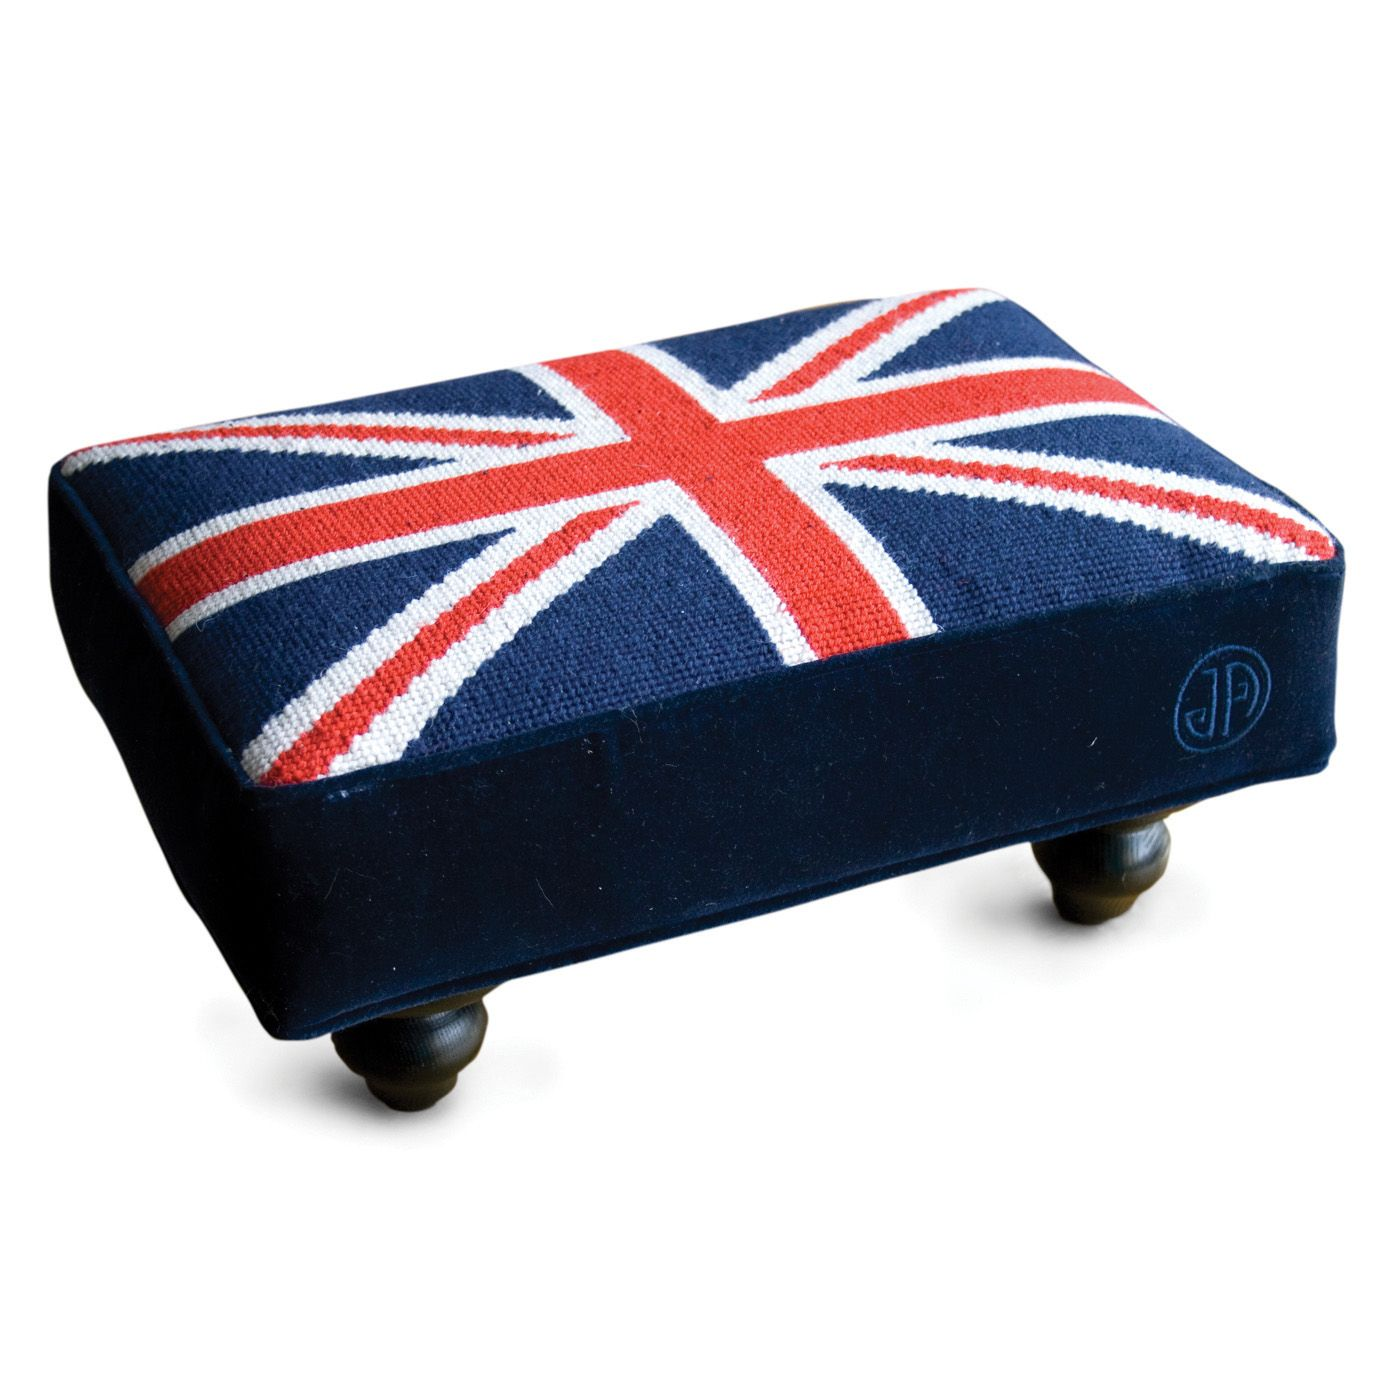 Beautiful Jonathan Adler British Flag Needlepoint Stool In All Furniture Photo Gallery